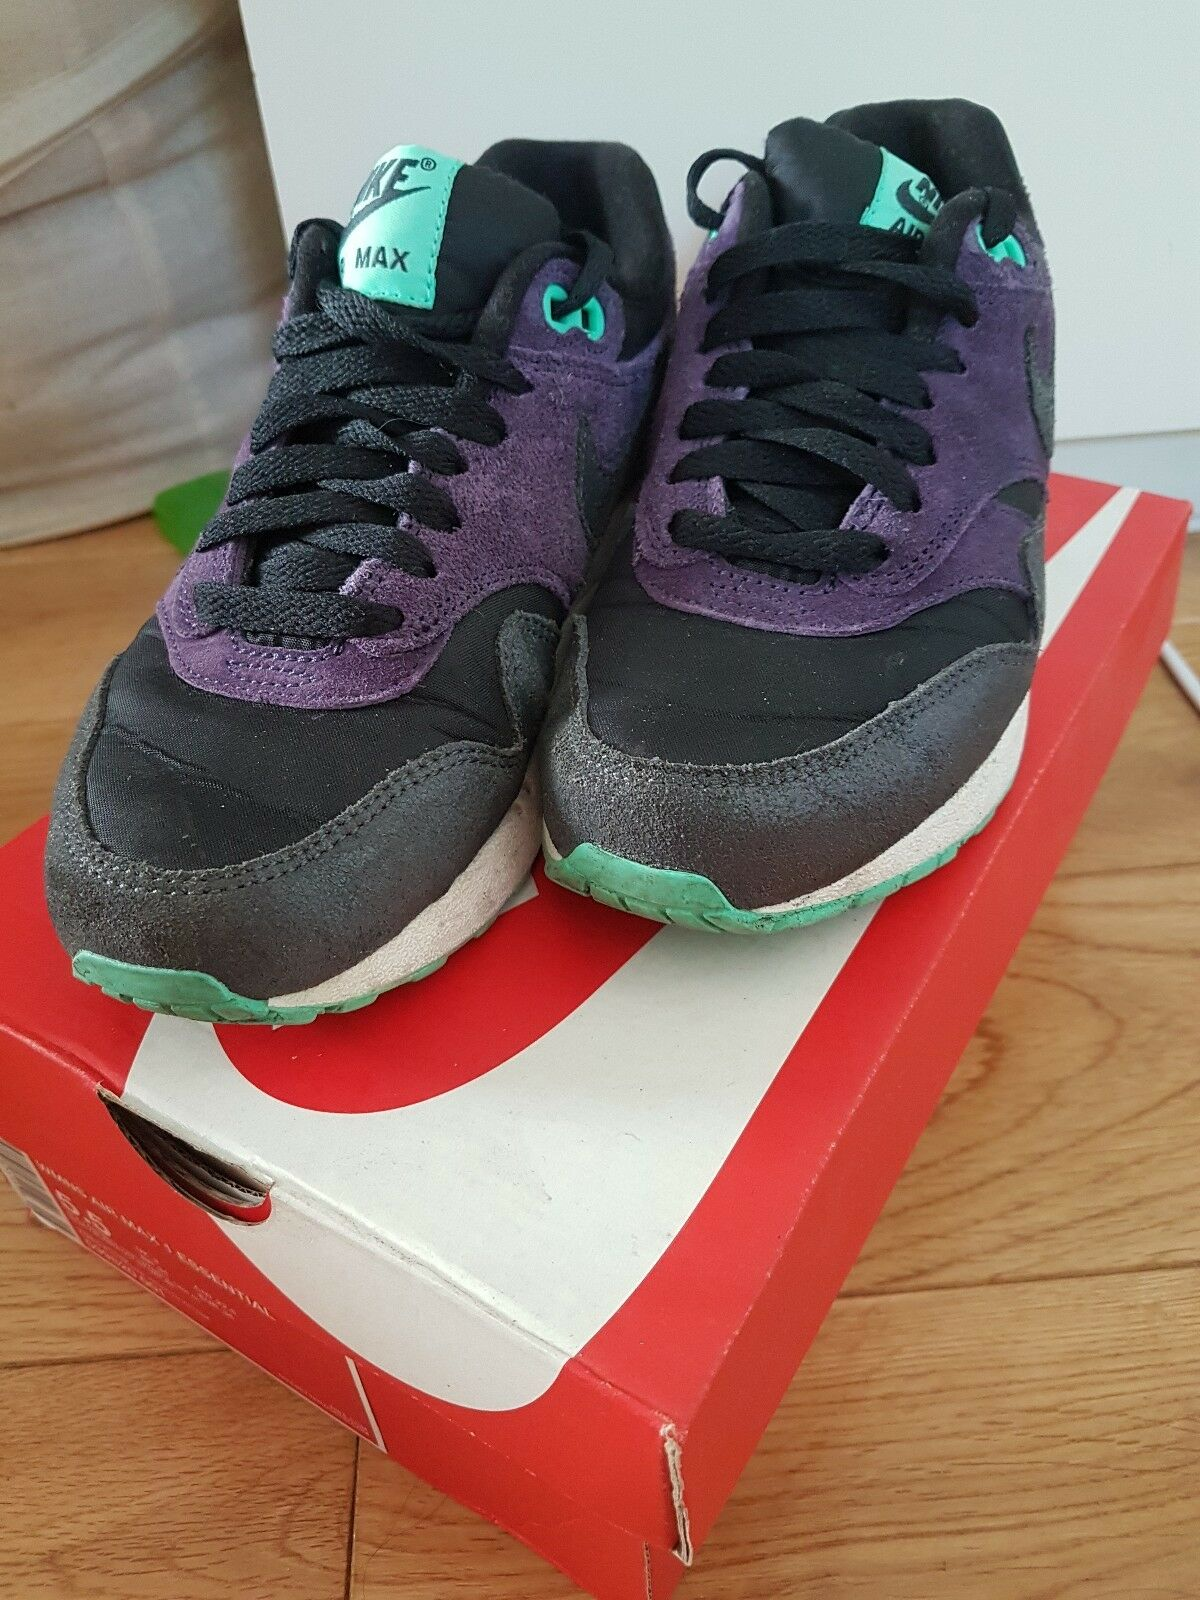 NIKE AIR MAX 1 ESSENTIAL, BLACK PURPLE AND GREEN, UK SIZE 3